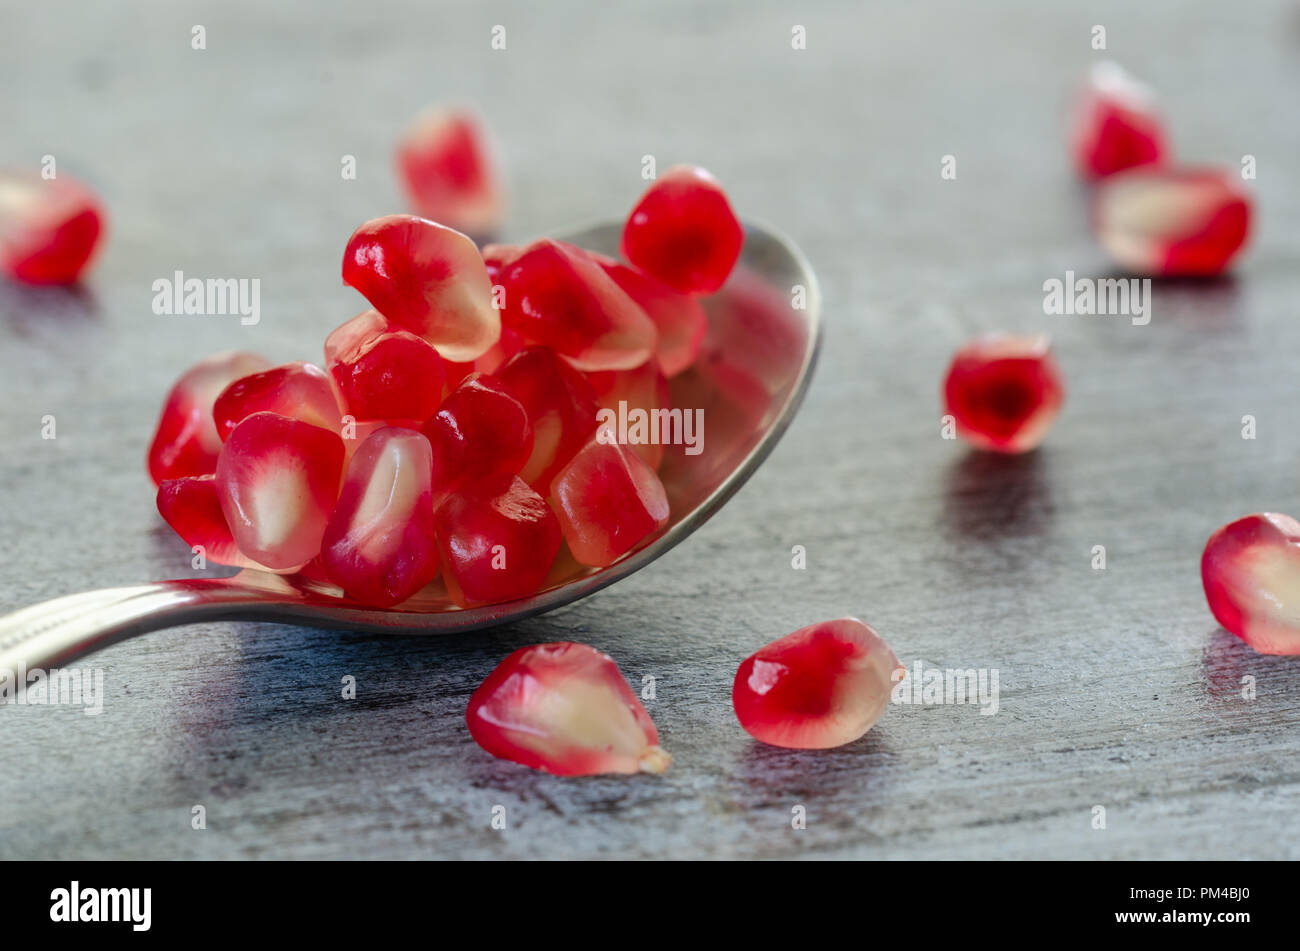 Pomegranate seeds are in spoon on wooden table. Close up,detail. - Stock Image